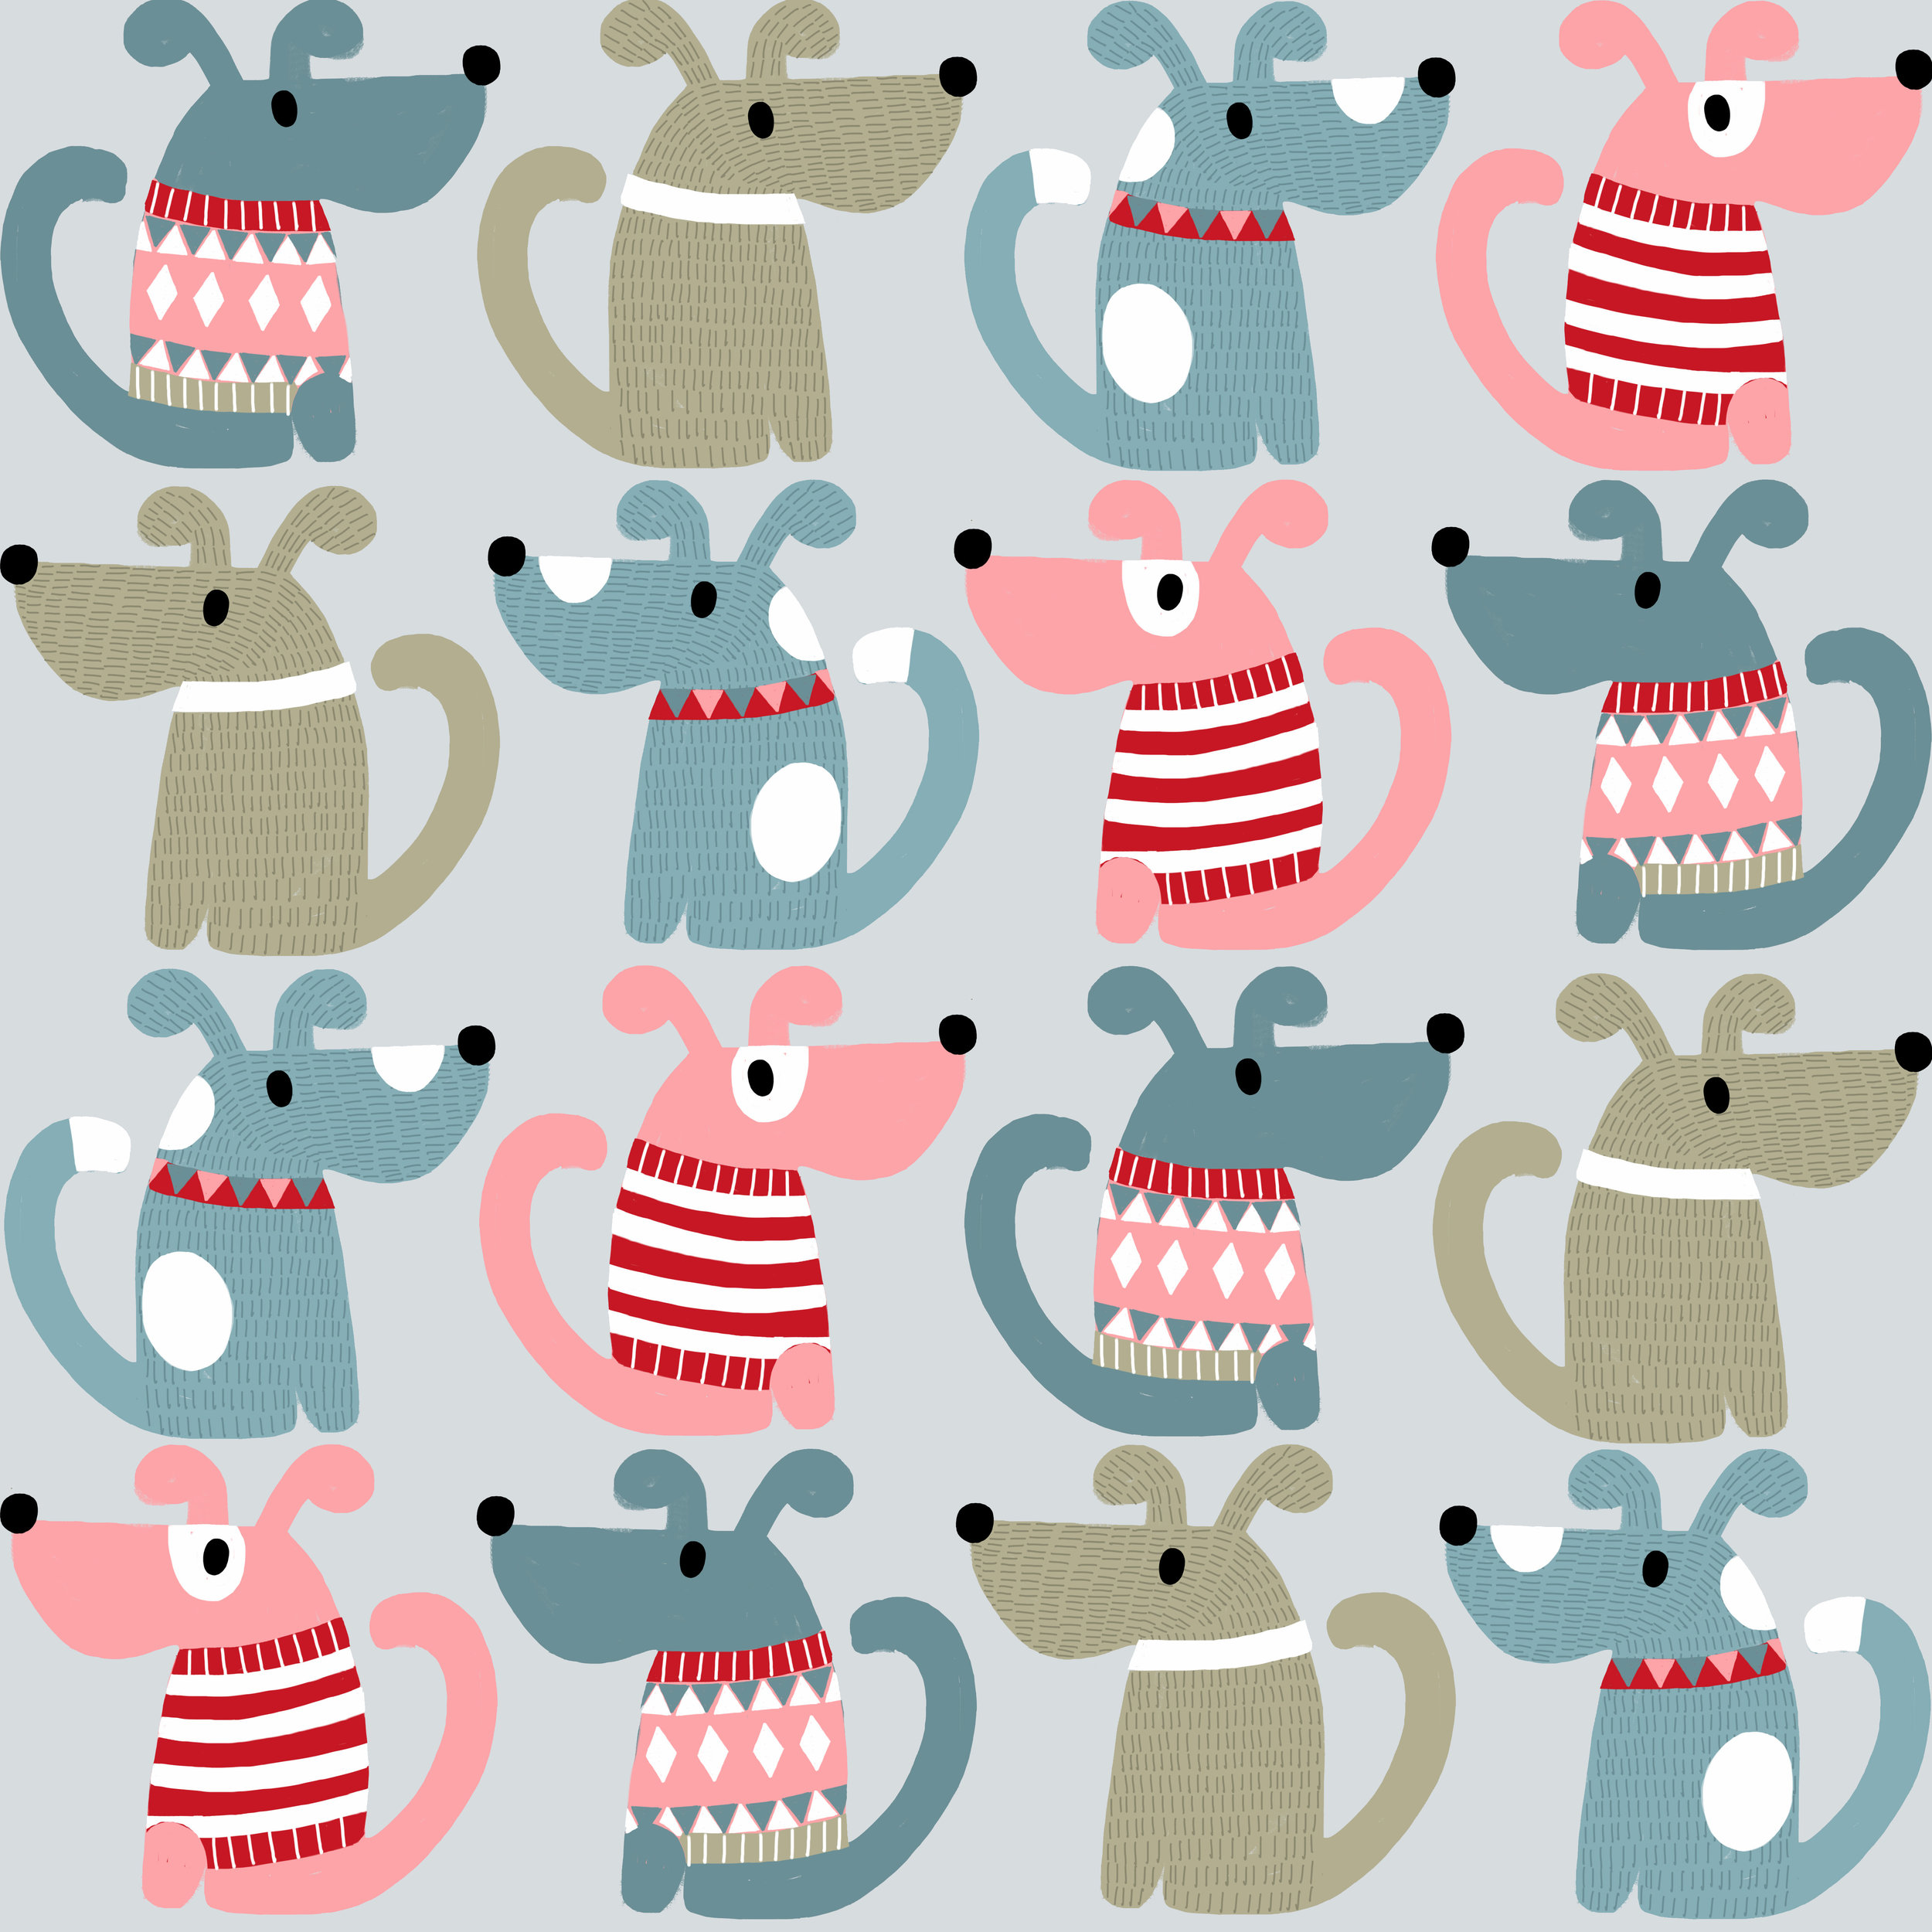 dogs repeat pattern without bones.jpg